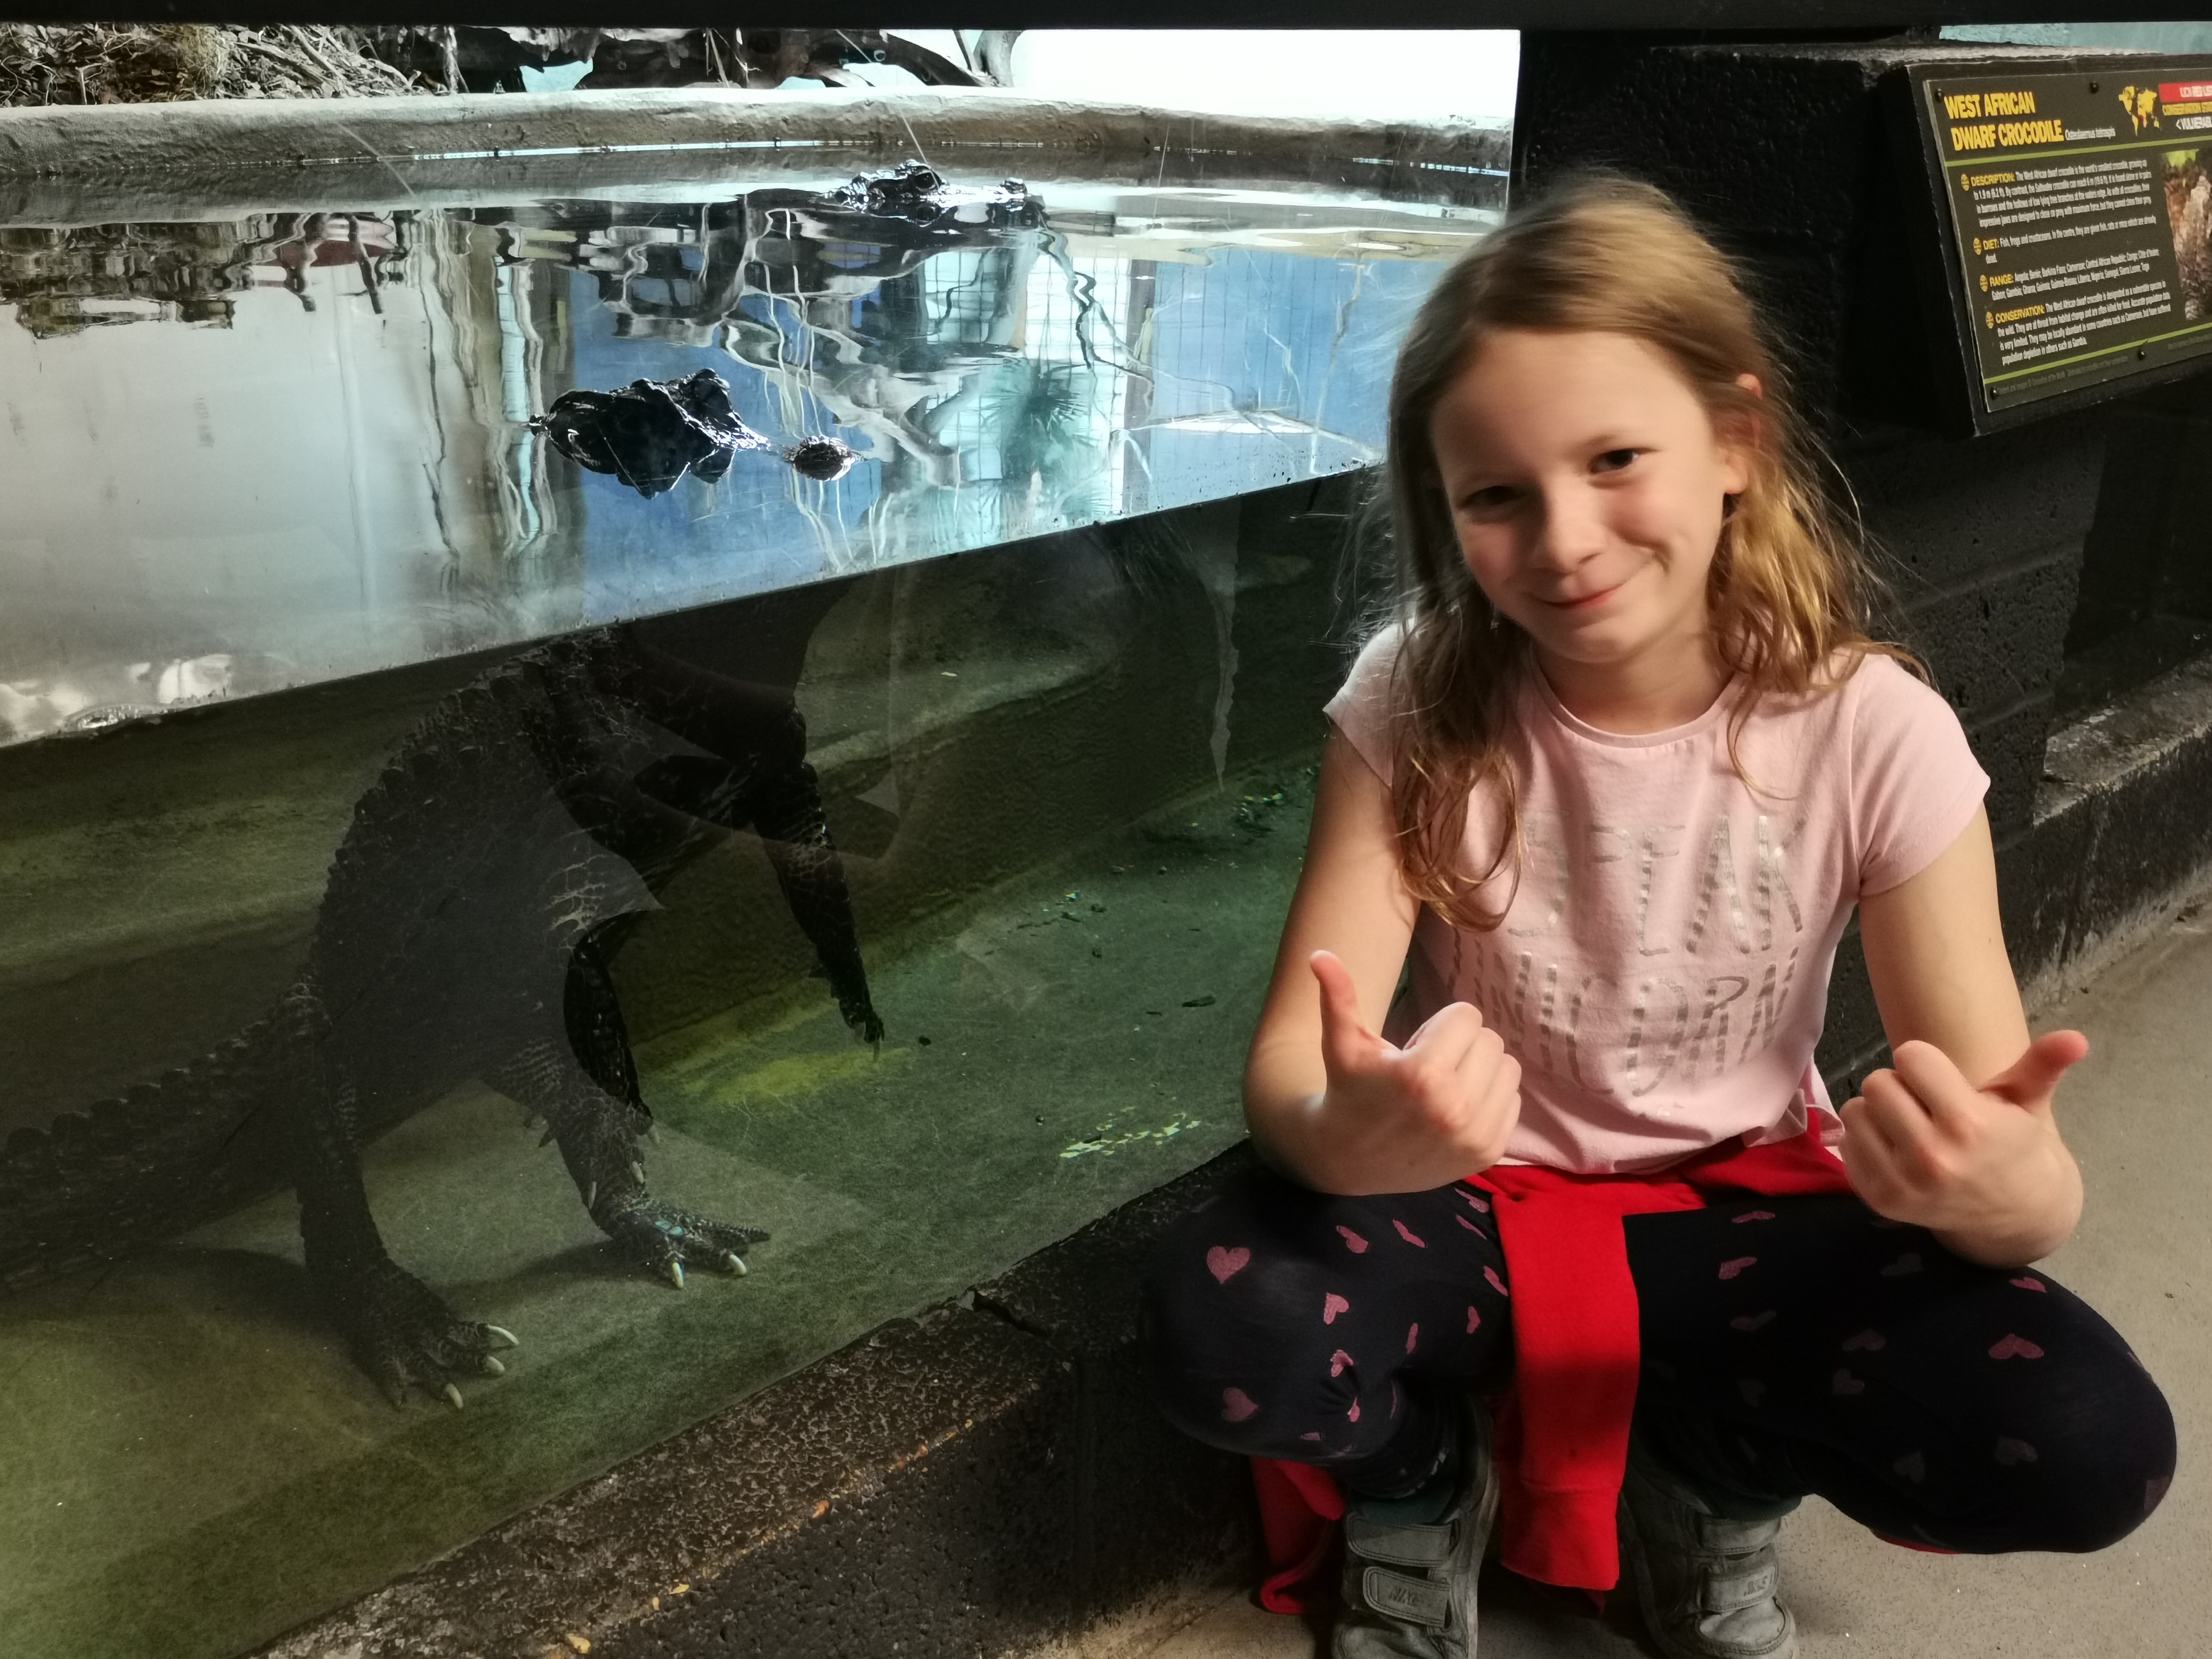 Lois bent donw next to a crocodile in its water enclosure